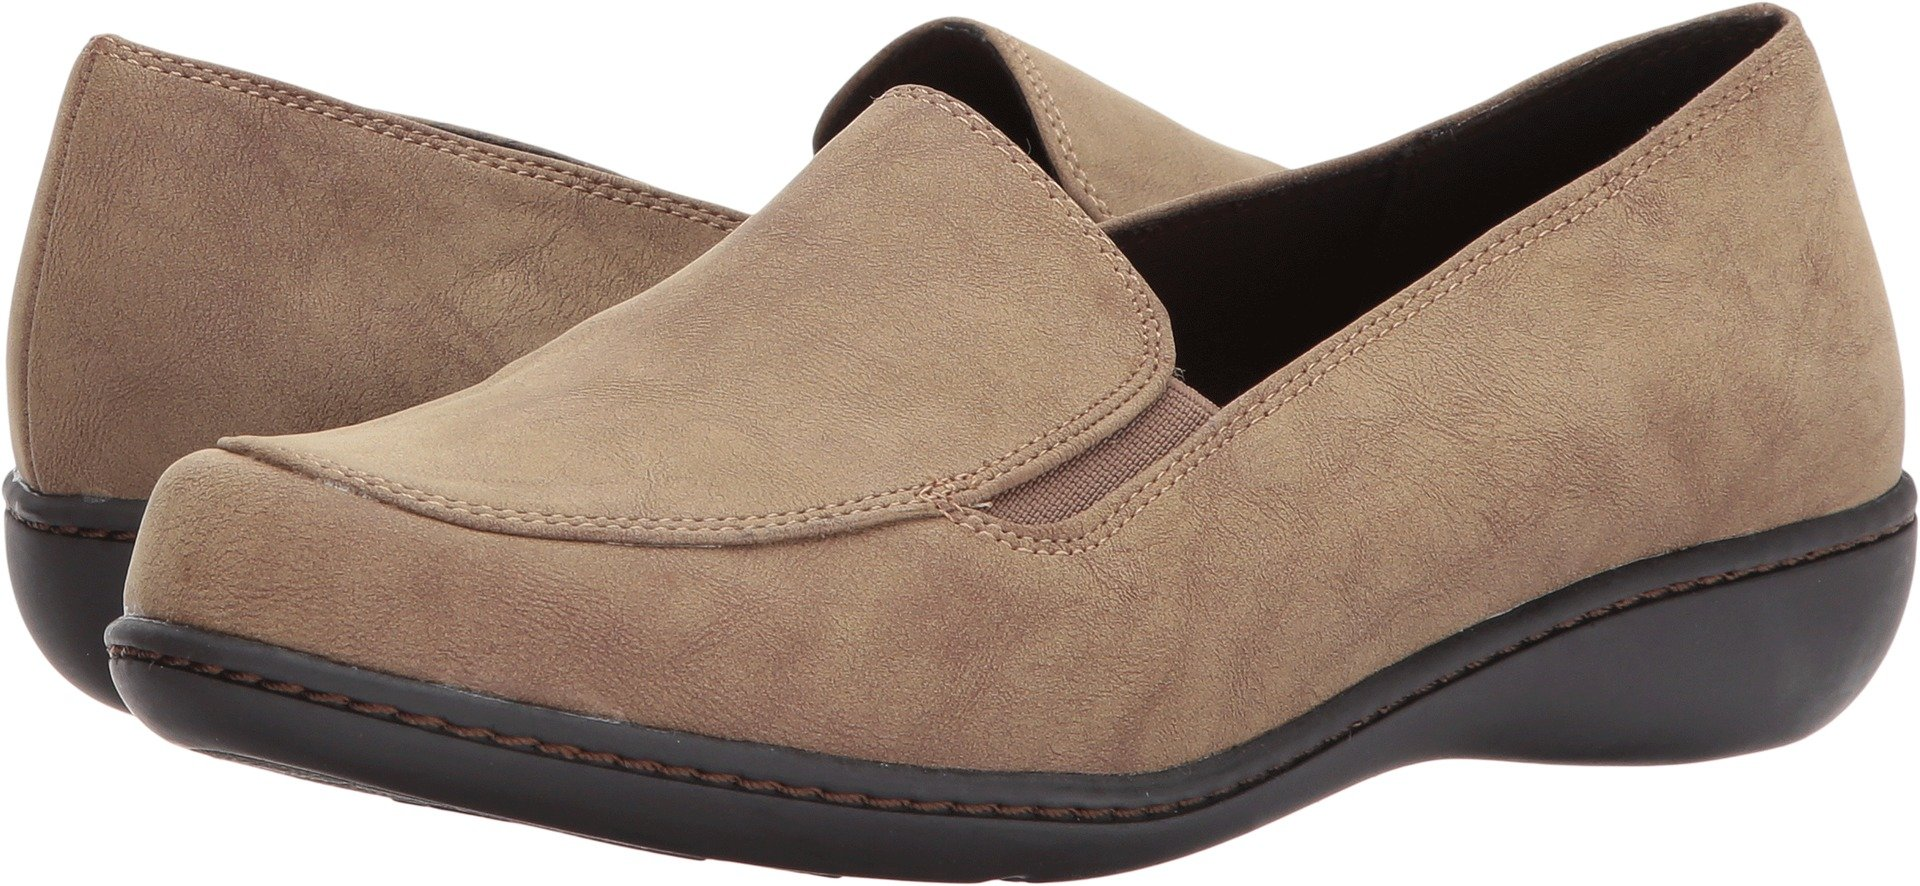 Soft Style by Hush Puppies Women's Jaylene Oxford, Taupe Nubuck, 5.5 M US